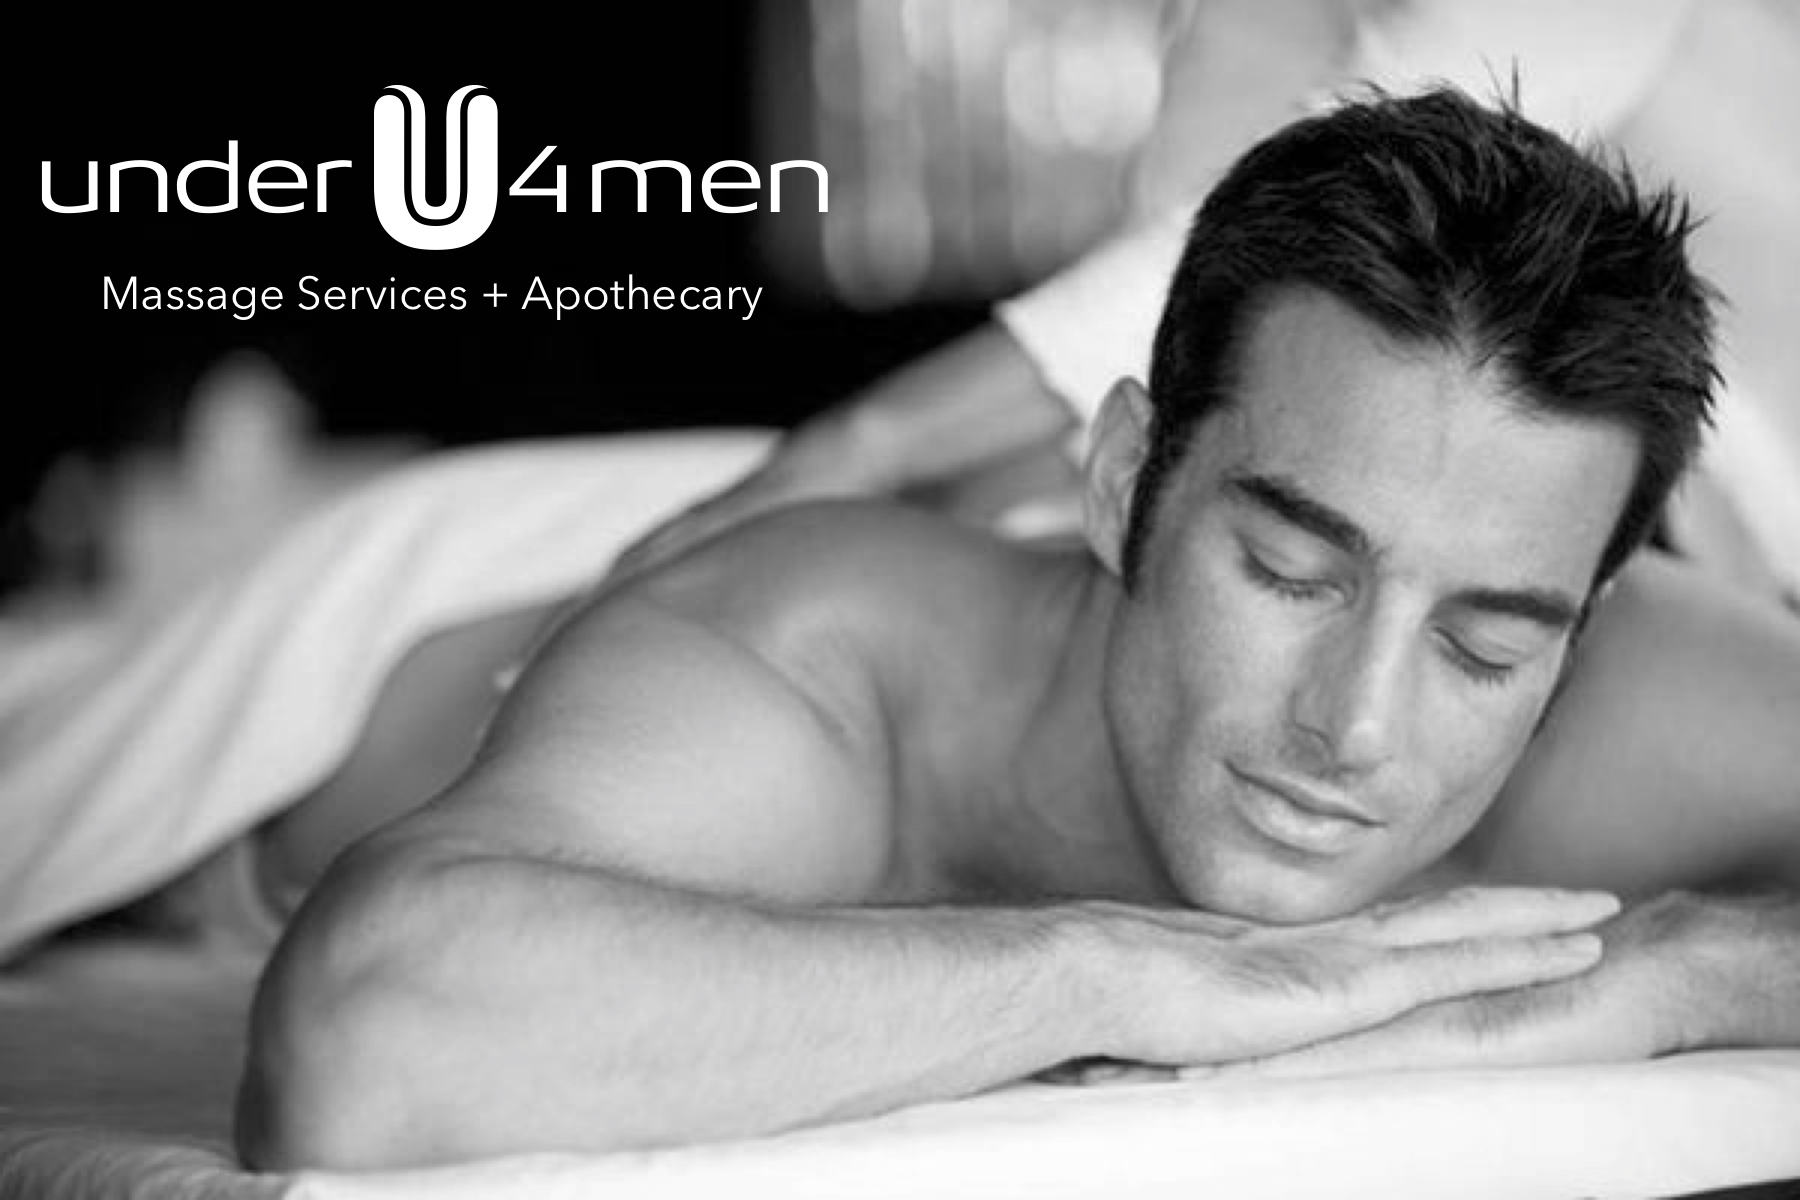 My Masseur at underU4men - underU4men